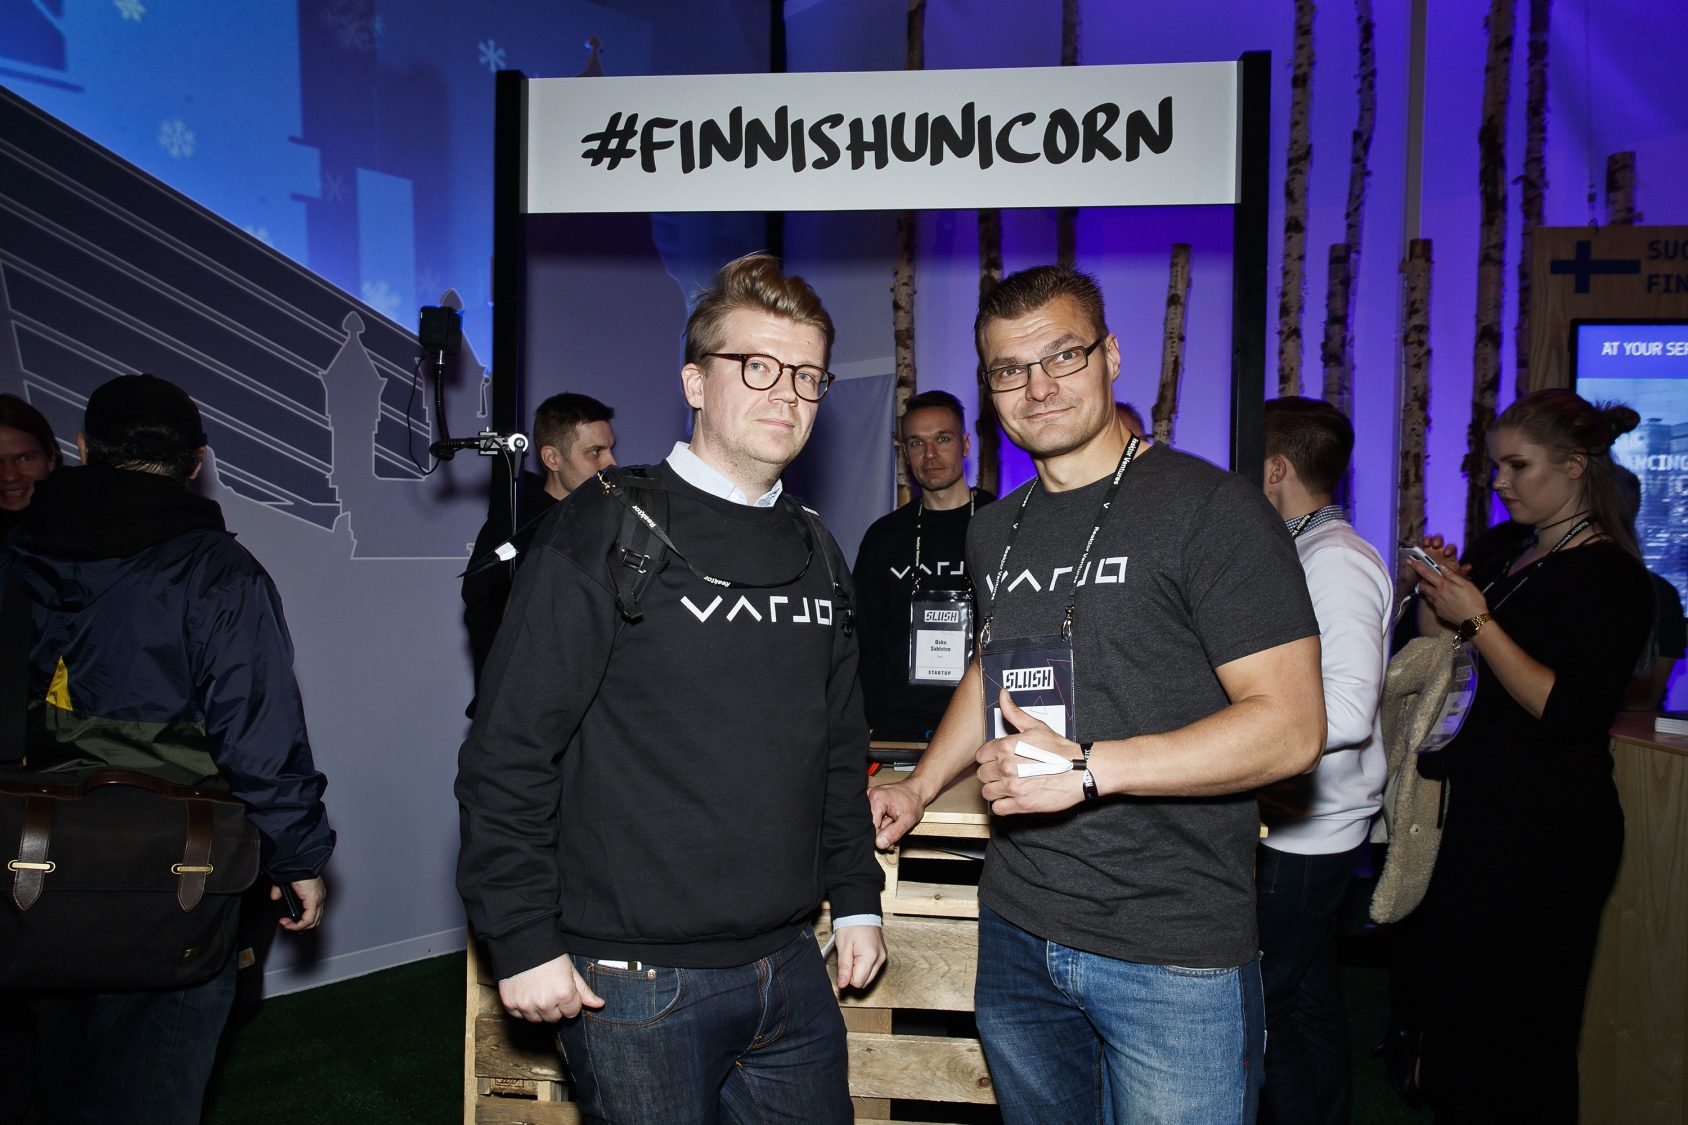 """Varjo CMO Jussi Mäkinen kept his cool under pretty extreme circumstances: dealing with the two princes. """"This technology is the best in the world, so it deserves the best possible start,"""" Mäkinen says."""